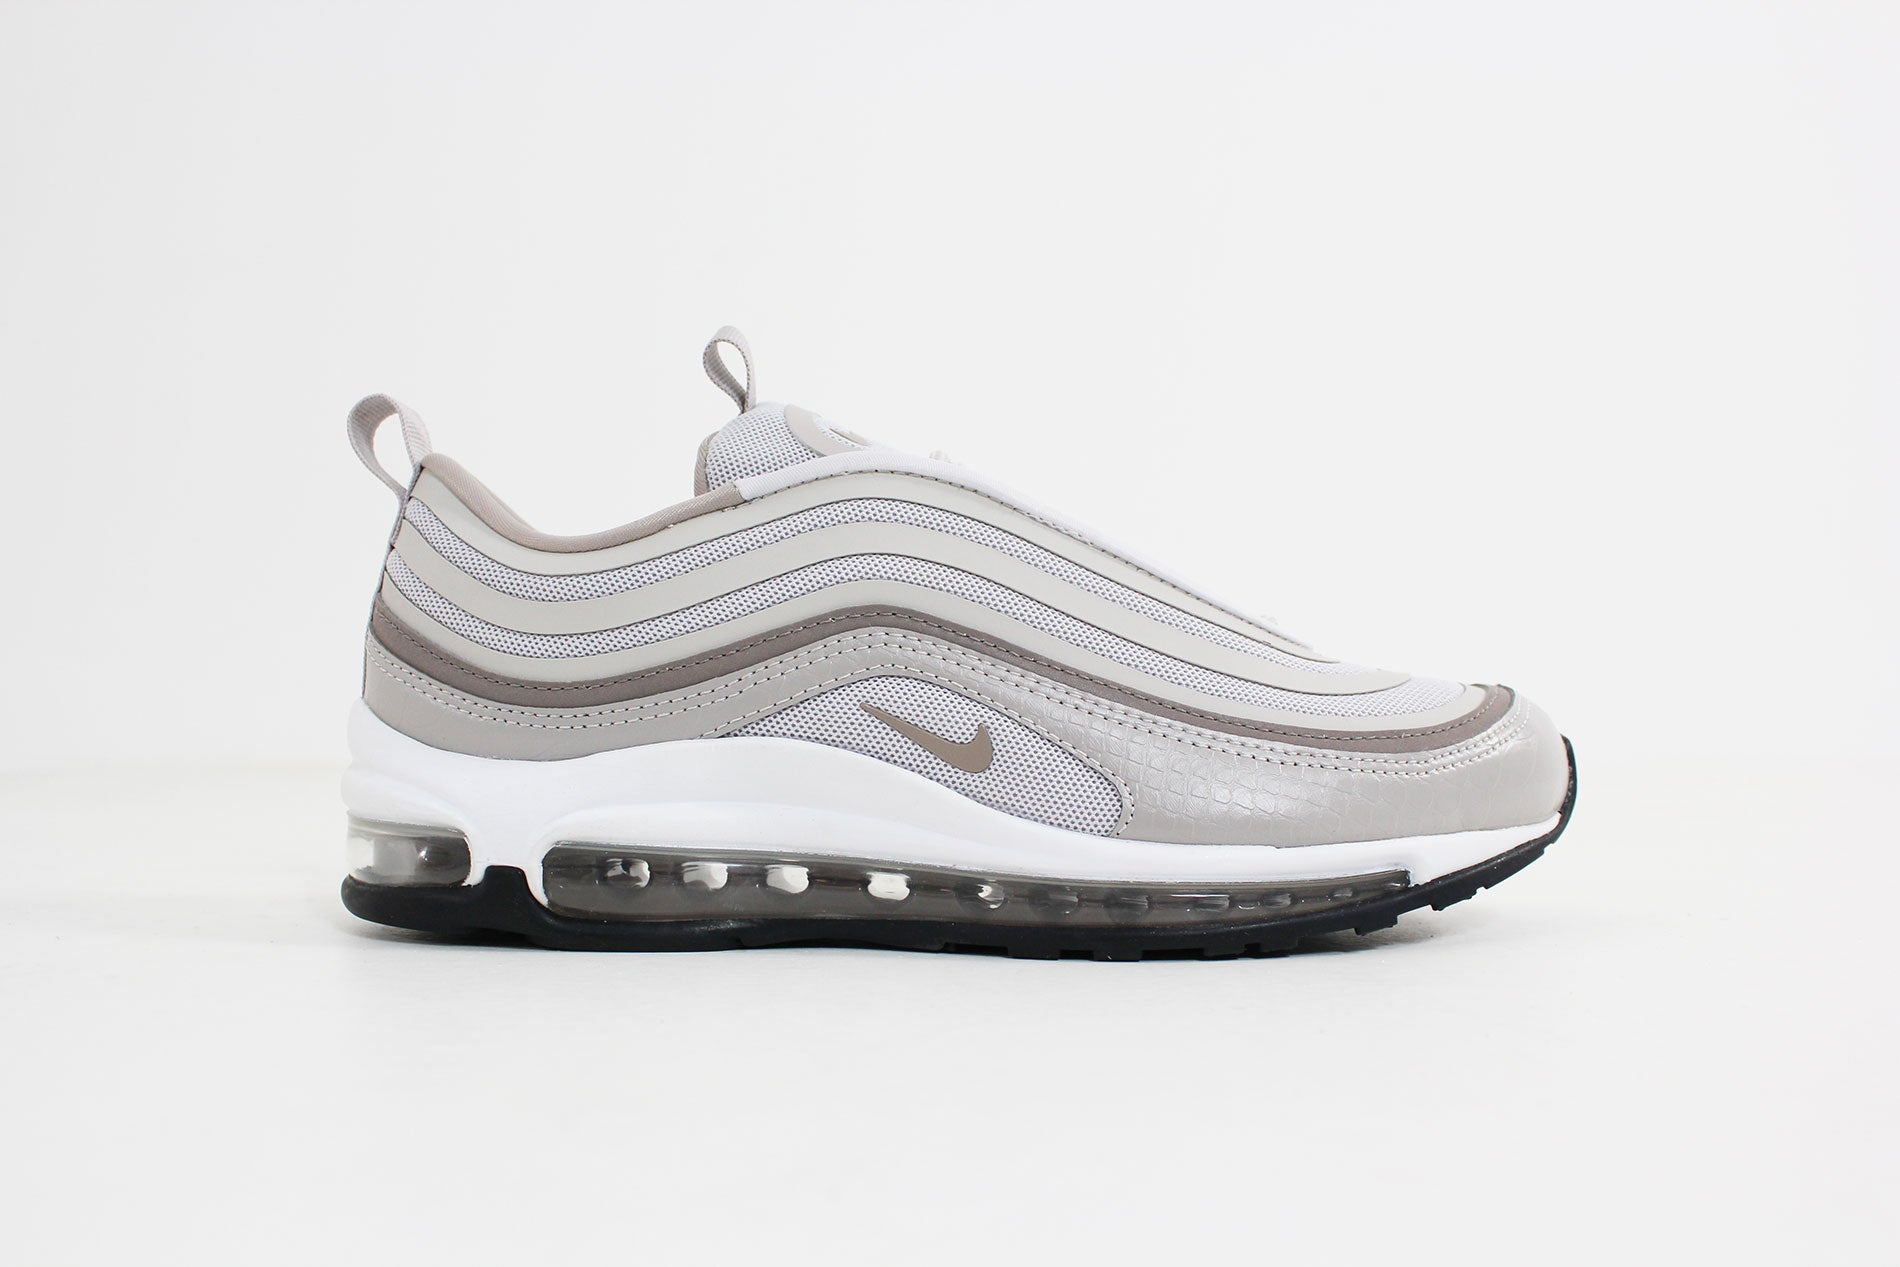 Nike - Air Max 97 Ultra '17 Sev Women (Moon Particle/ Sepia Stone -Vast Grey) AH6806-200